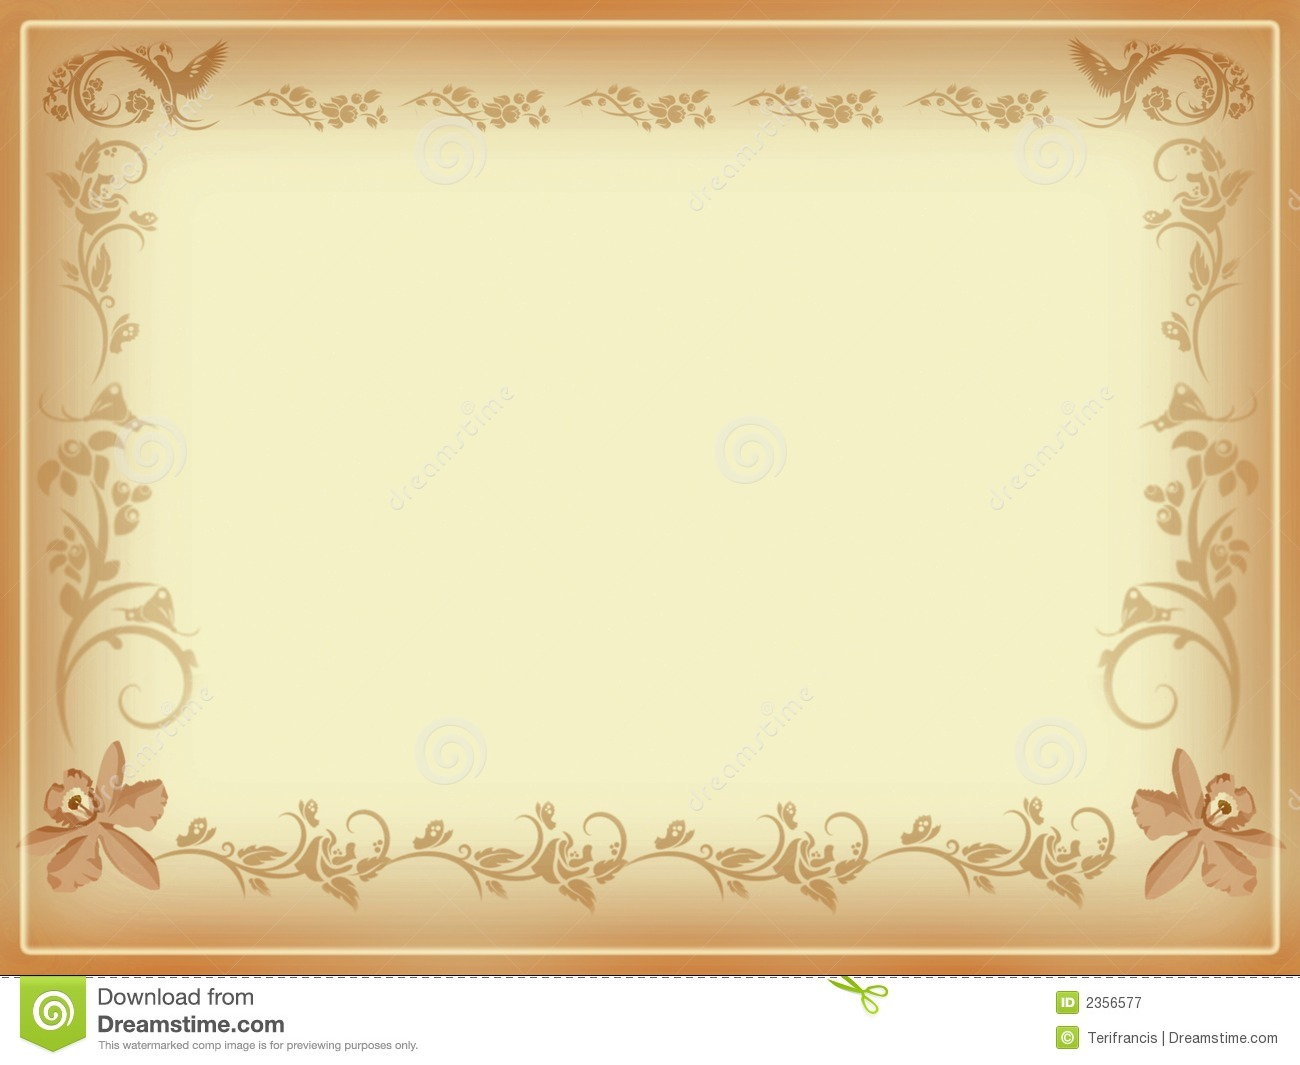 Vintage Floral Frame In Antique Style Note Card  Ideal For Background